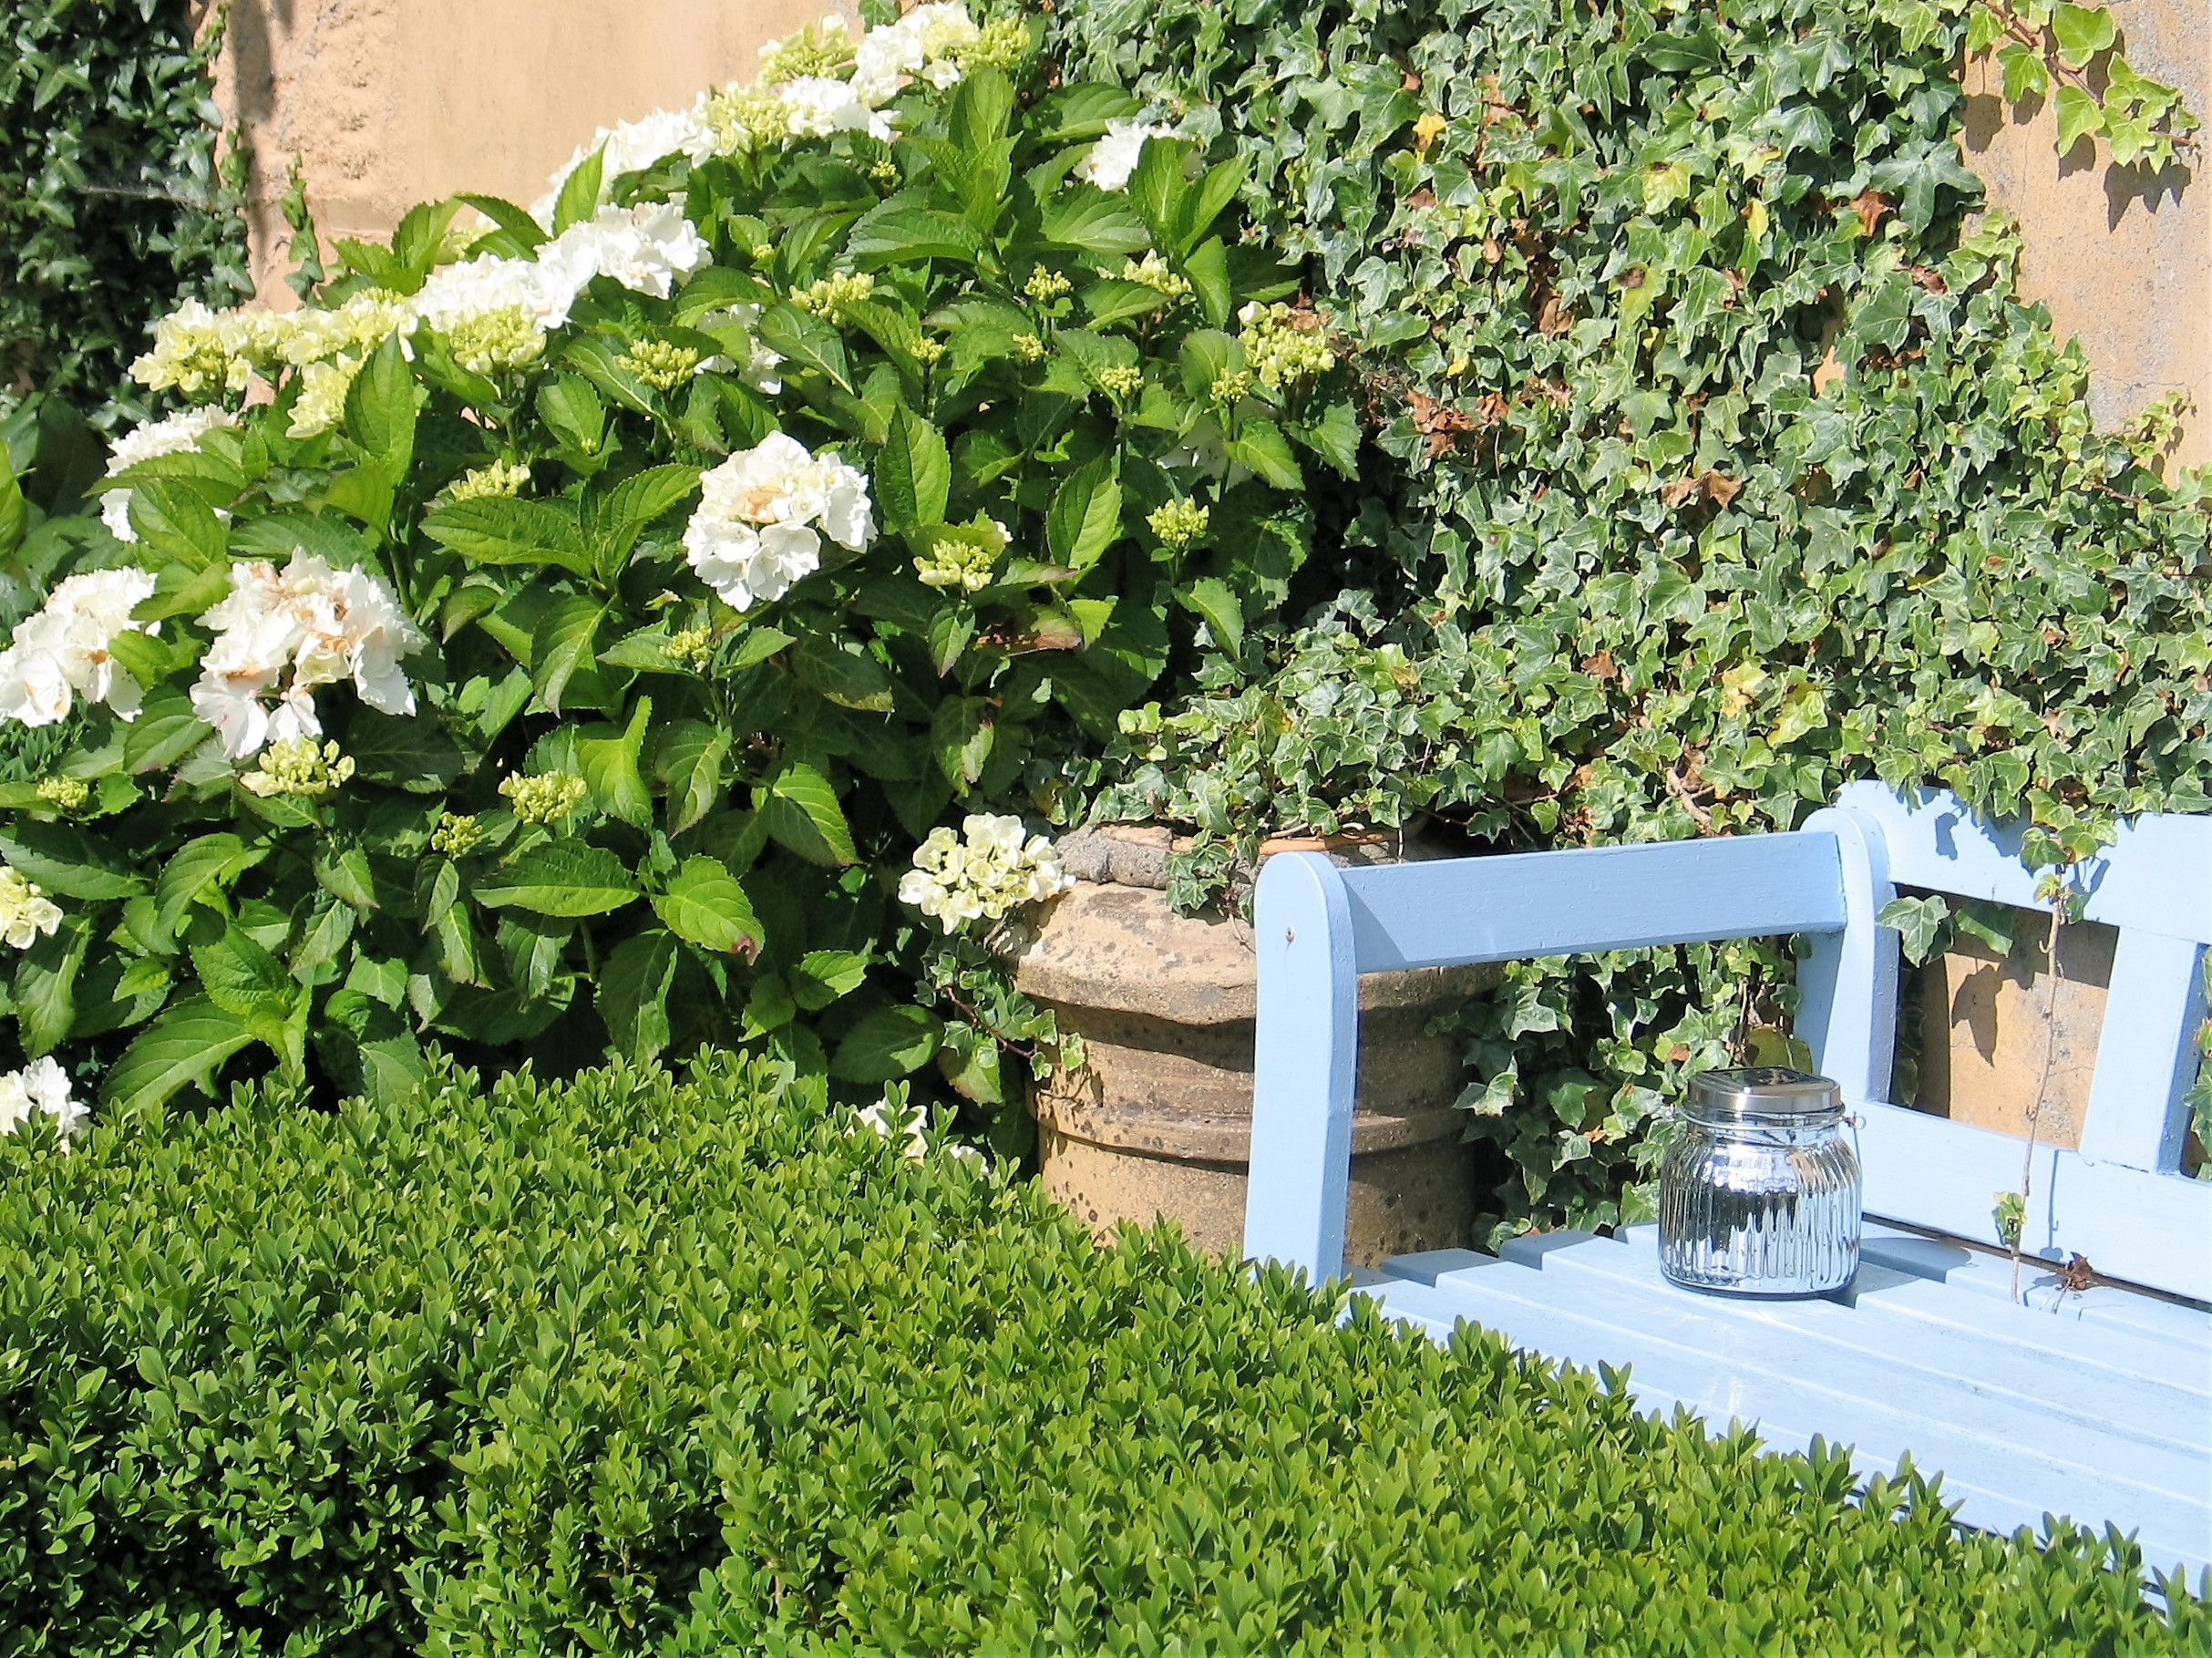 Intimate garden seats tucked amongst the foliage in teh Ednovean Farm Garden